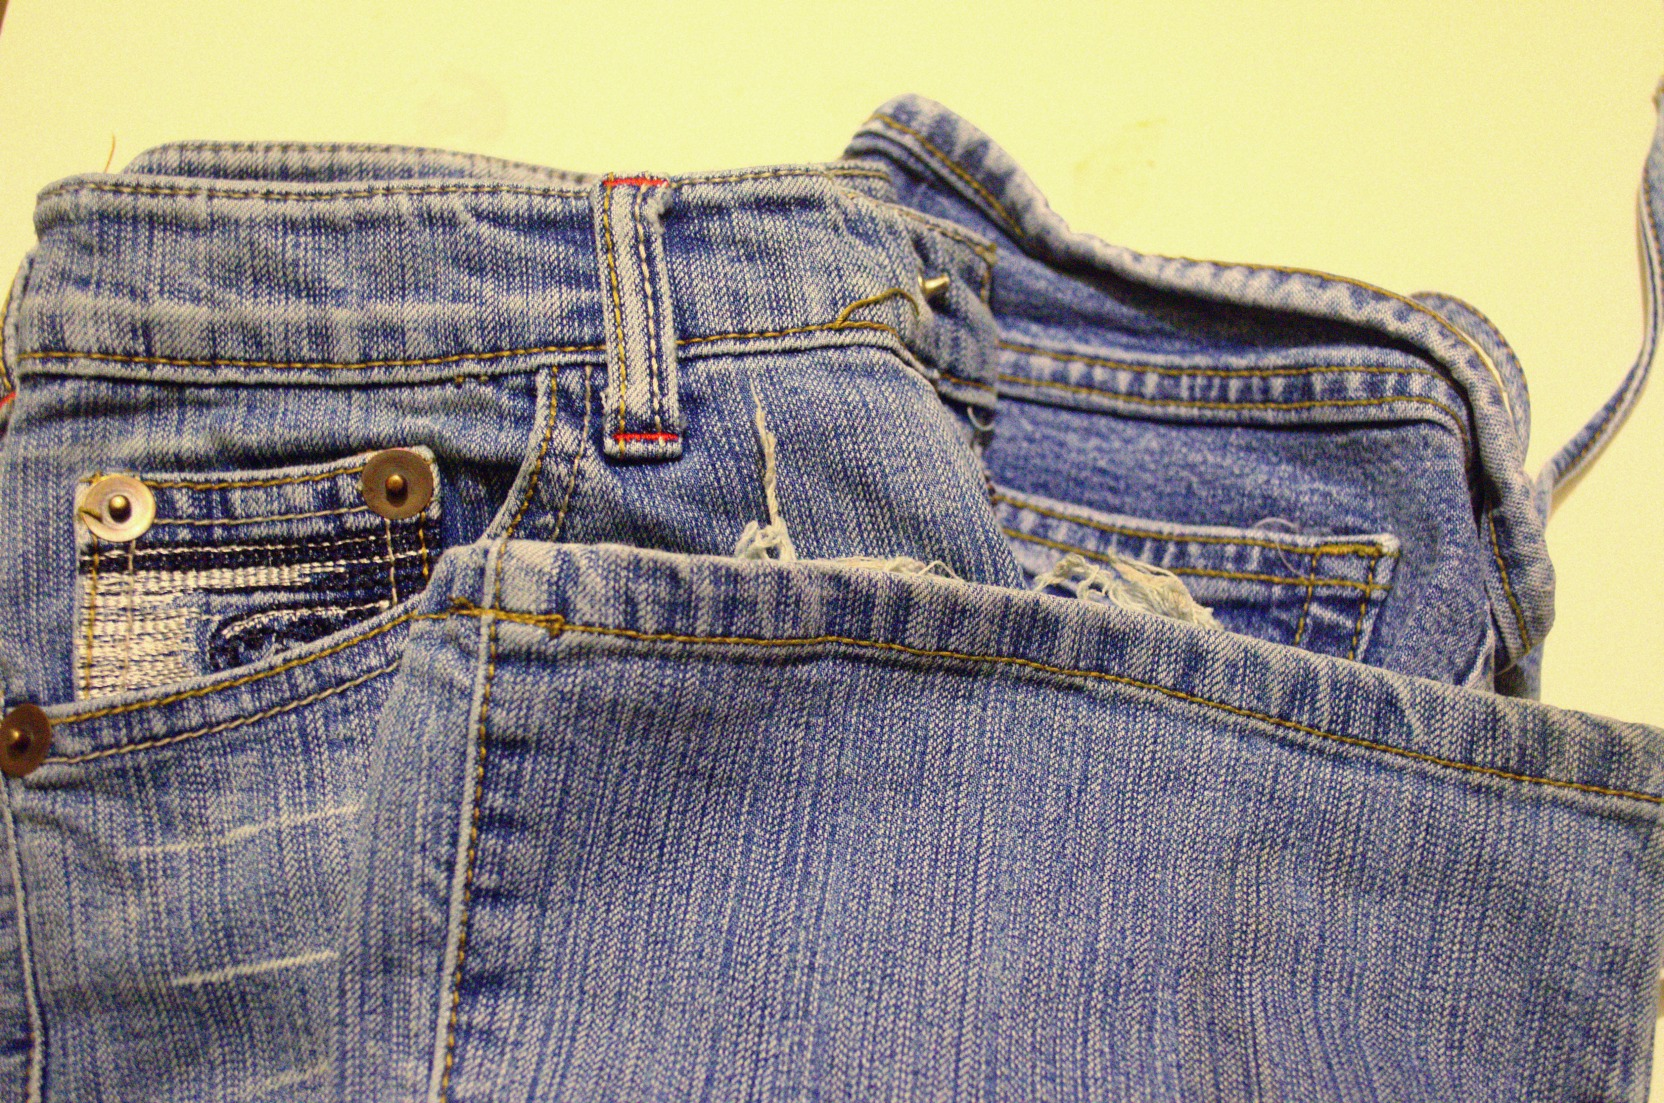 It's in the Jeans: Dressing for Your Figure